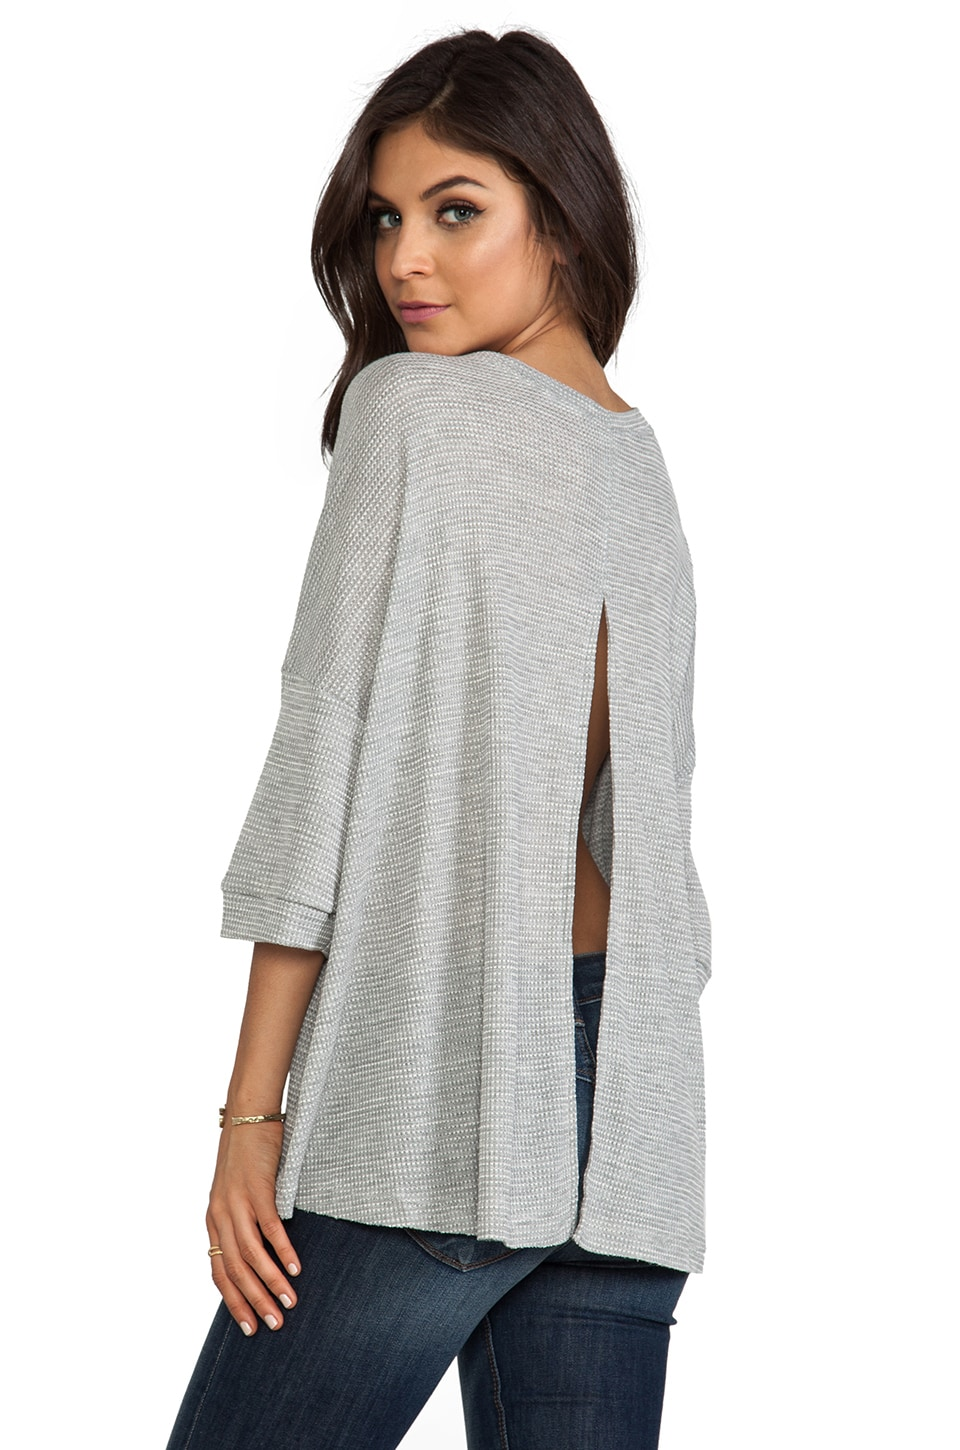 Free People Story Teller Tee in Heather Grey